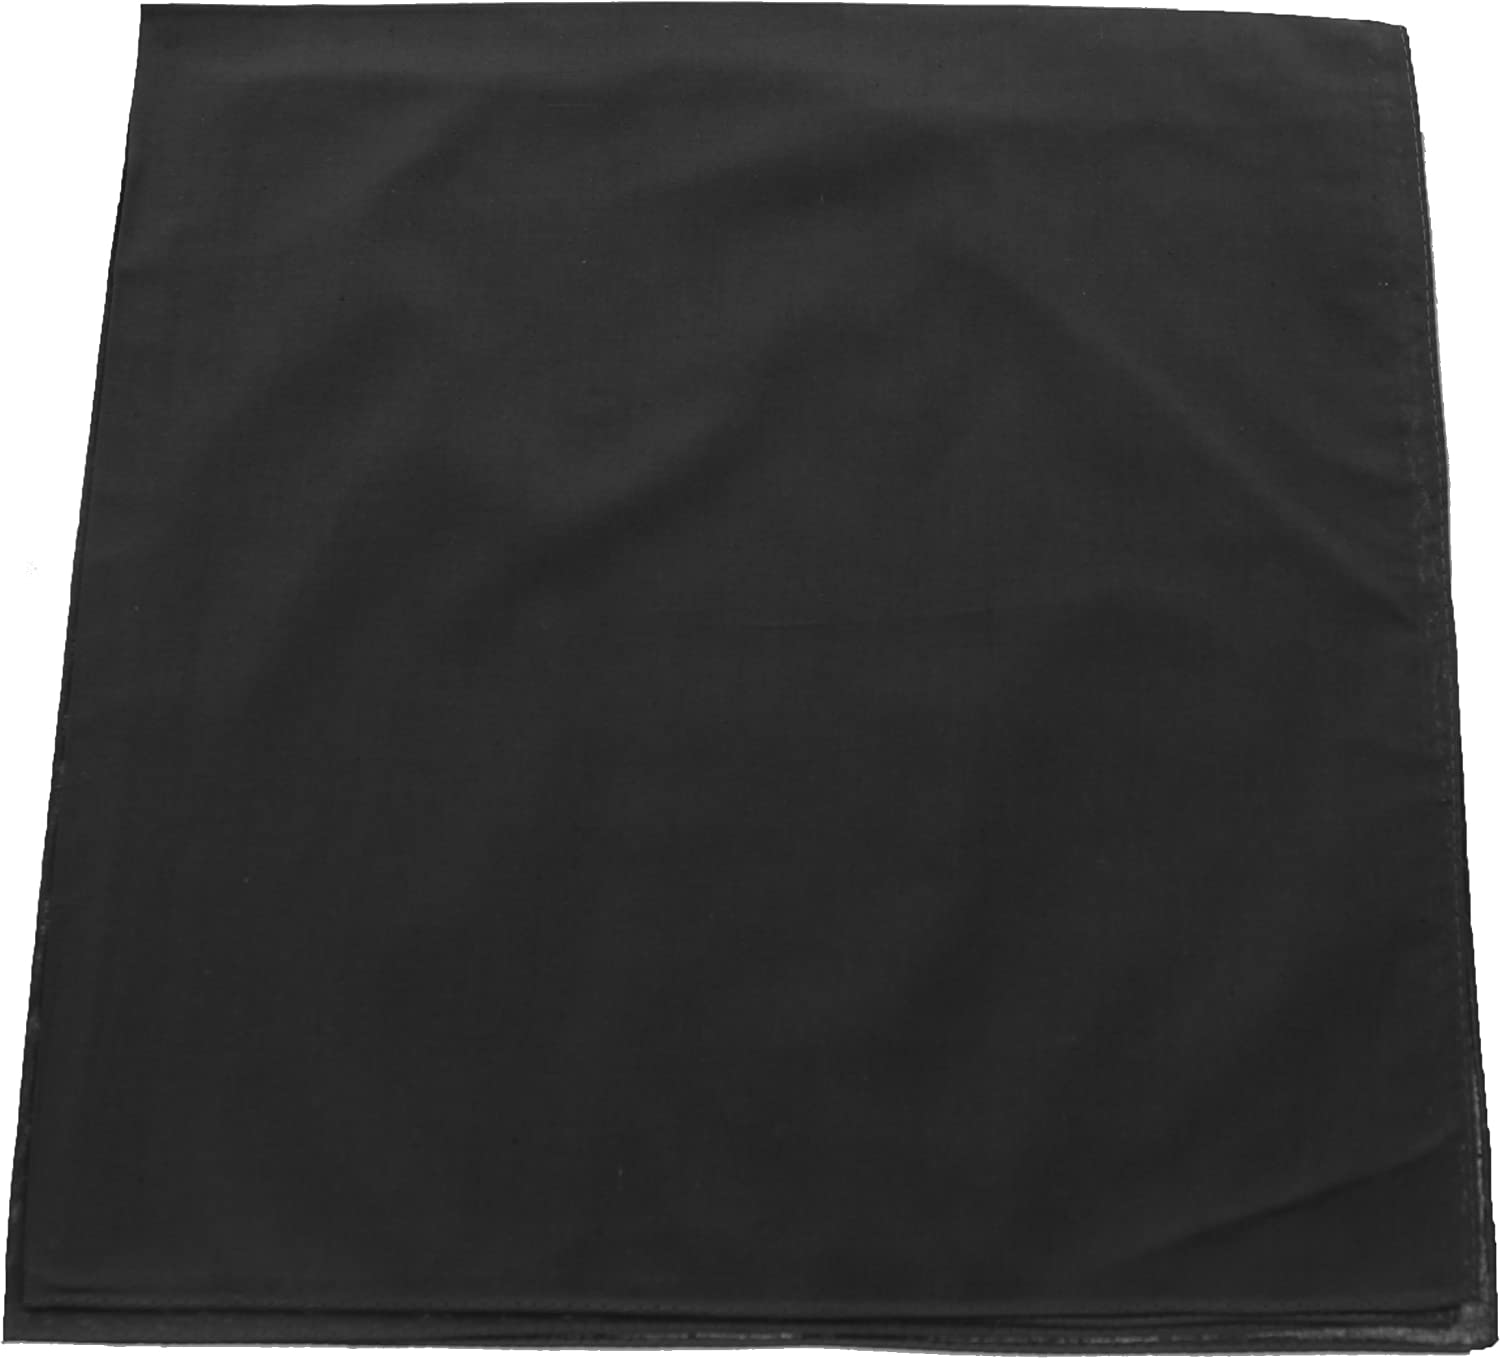 27 x 27 Solid Head Scarf Do-rag 100/% Cotton Bandanna Cover ARMYU Black Solid Color Jumbo 100/% Cotton Military Bandana